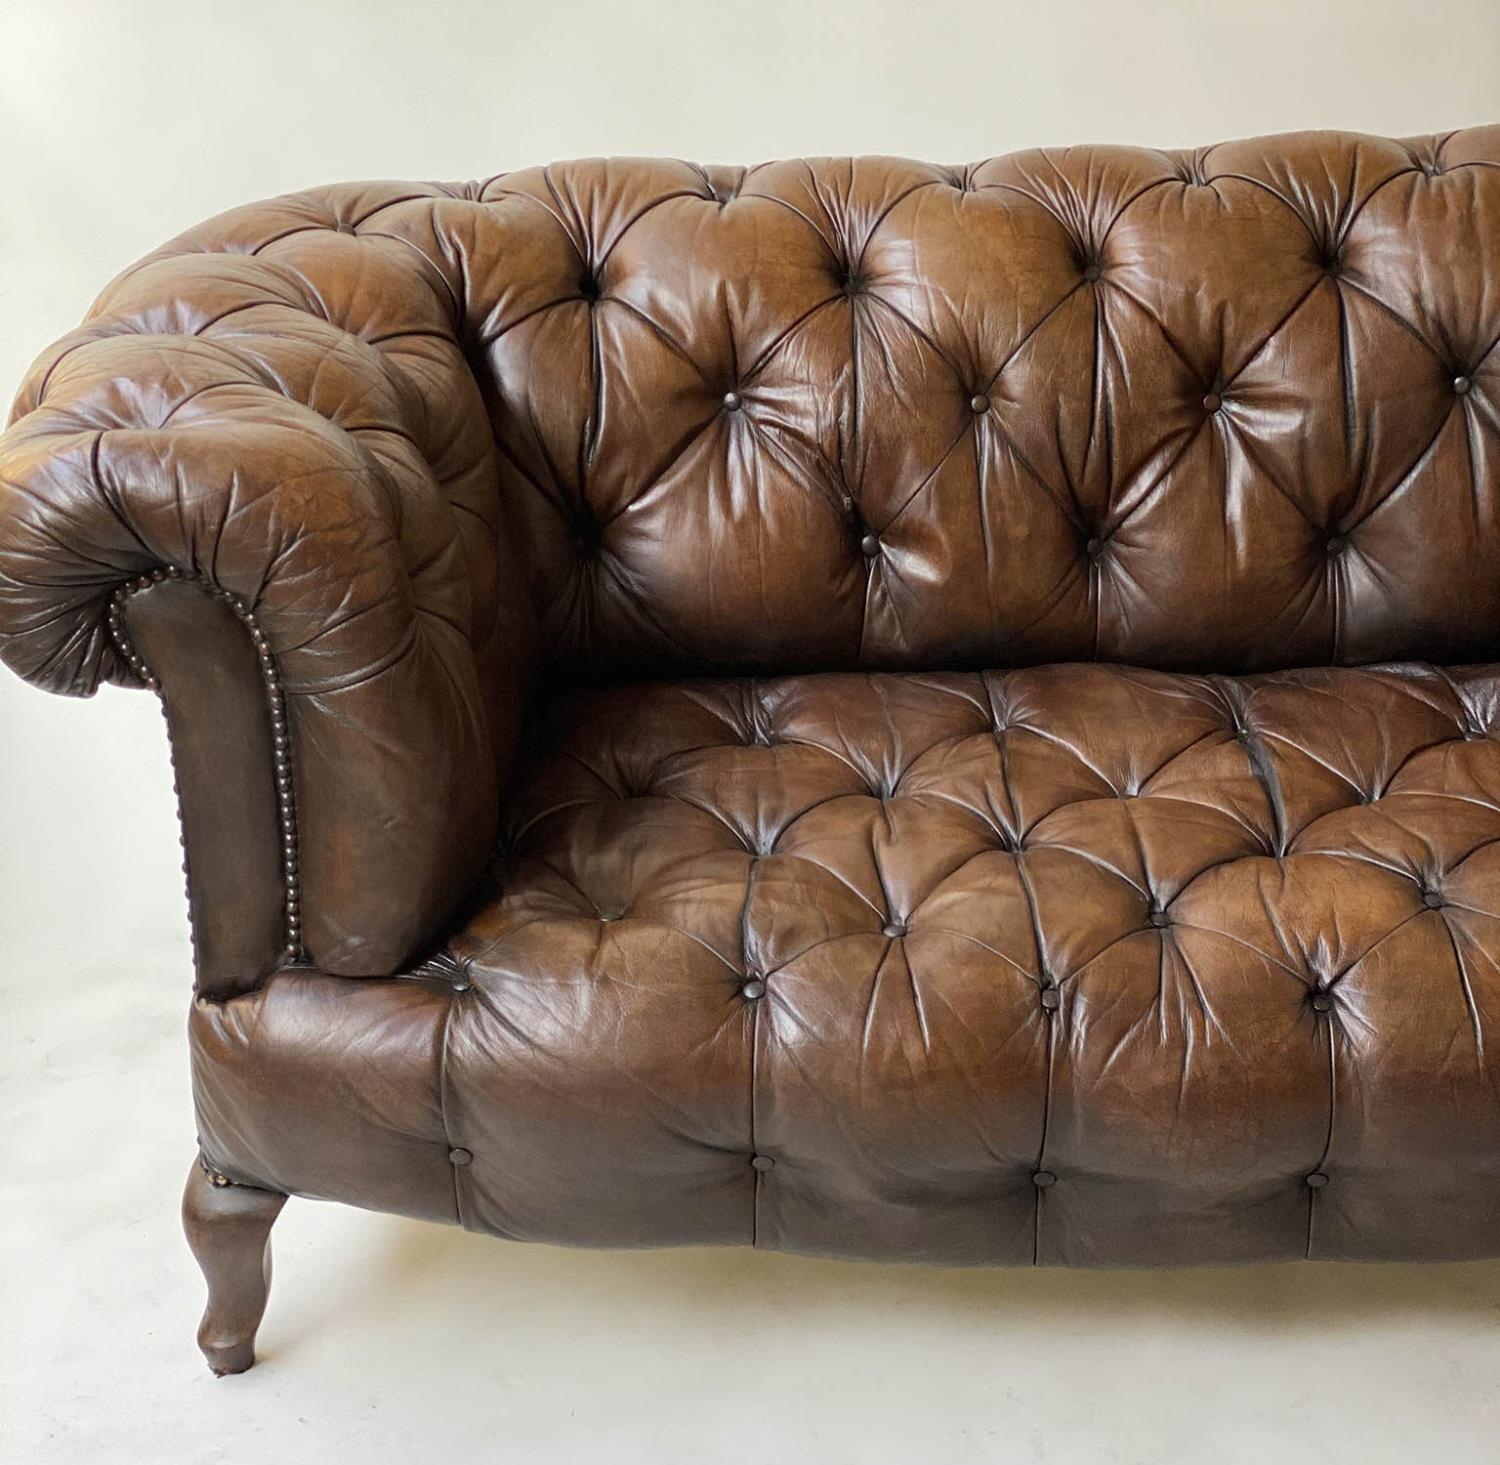 CHESTERFIELD SOFA, early 20th century Edwardian aged and faded brown leather with horsehair buttoned - Image 2 of 10